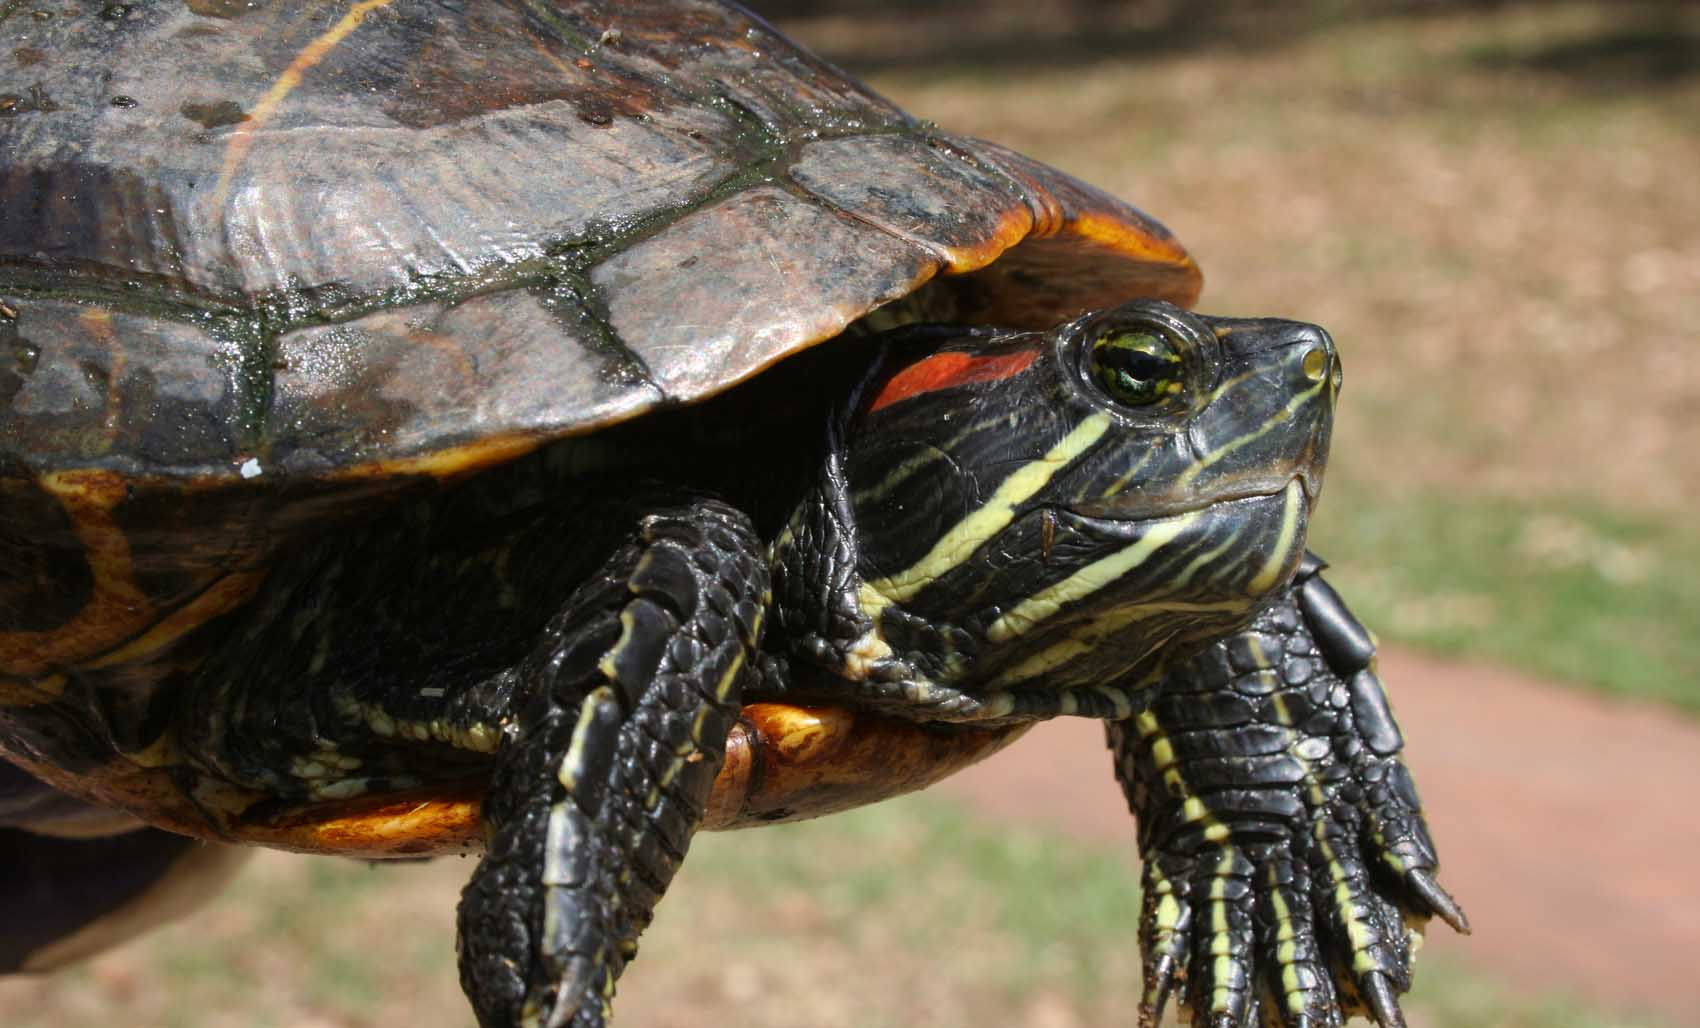 Red earred slider turtle